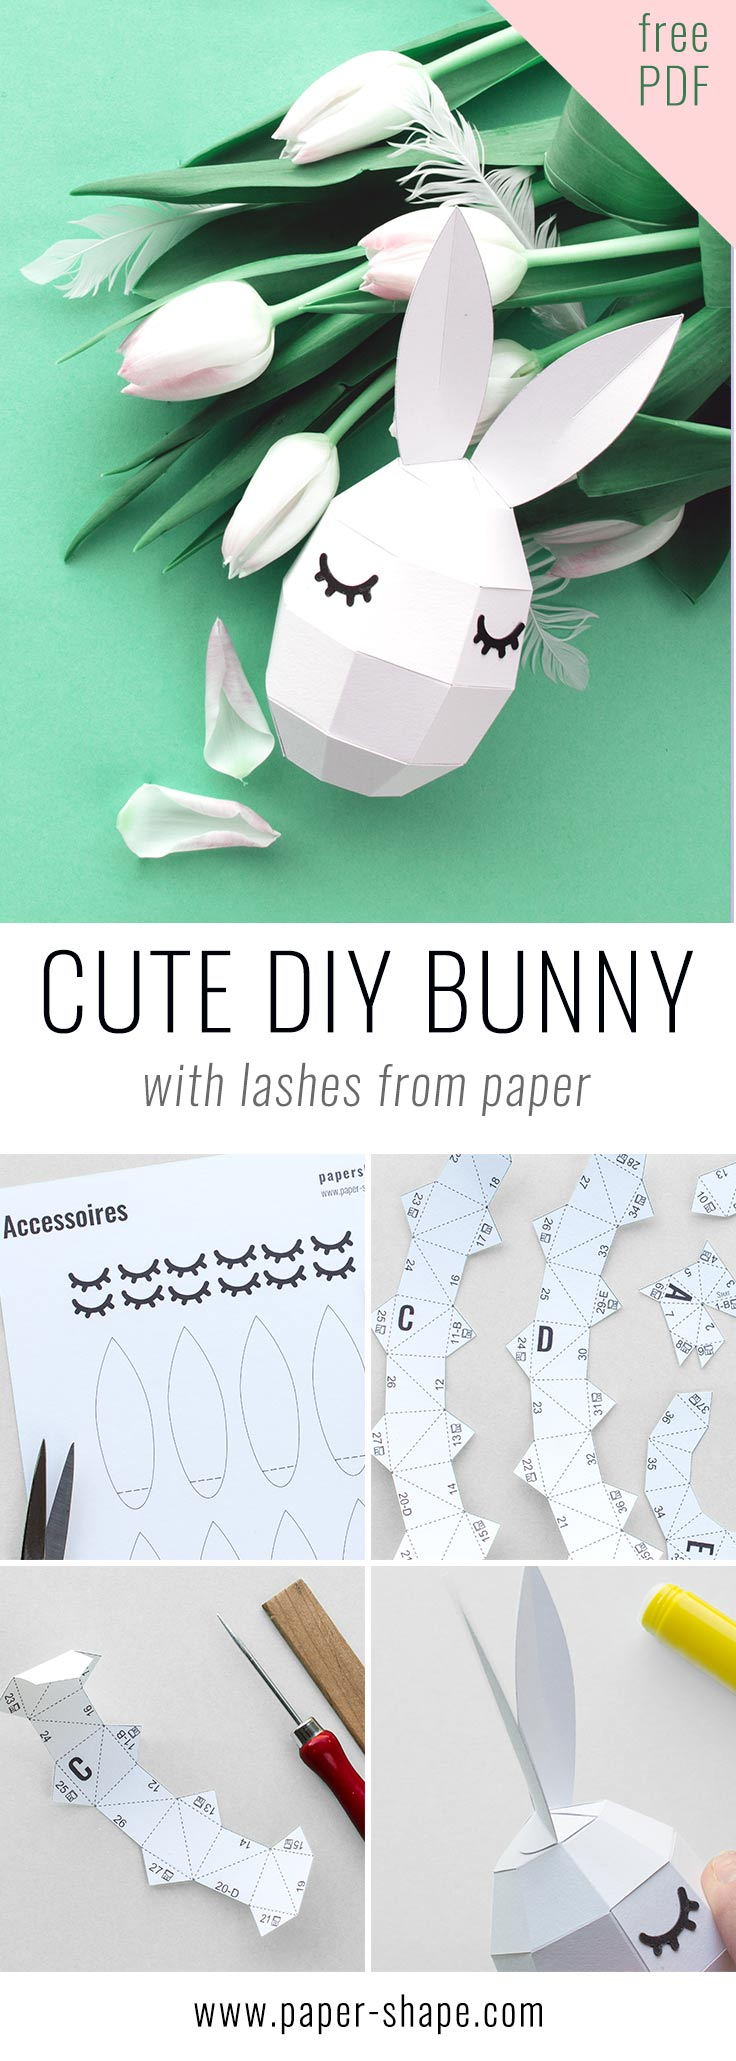 Super cute diy bunnys with lashes (free template) / PaperShape #eastereggs #easter #papercraft #diy